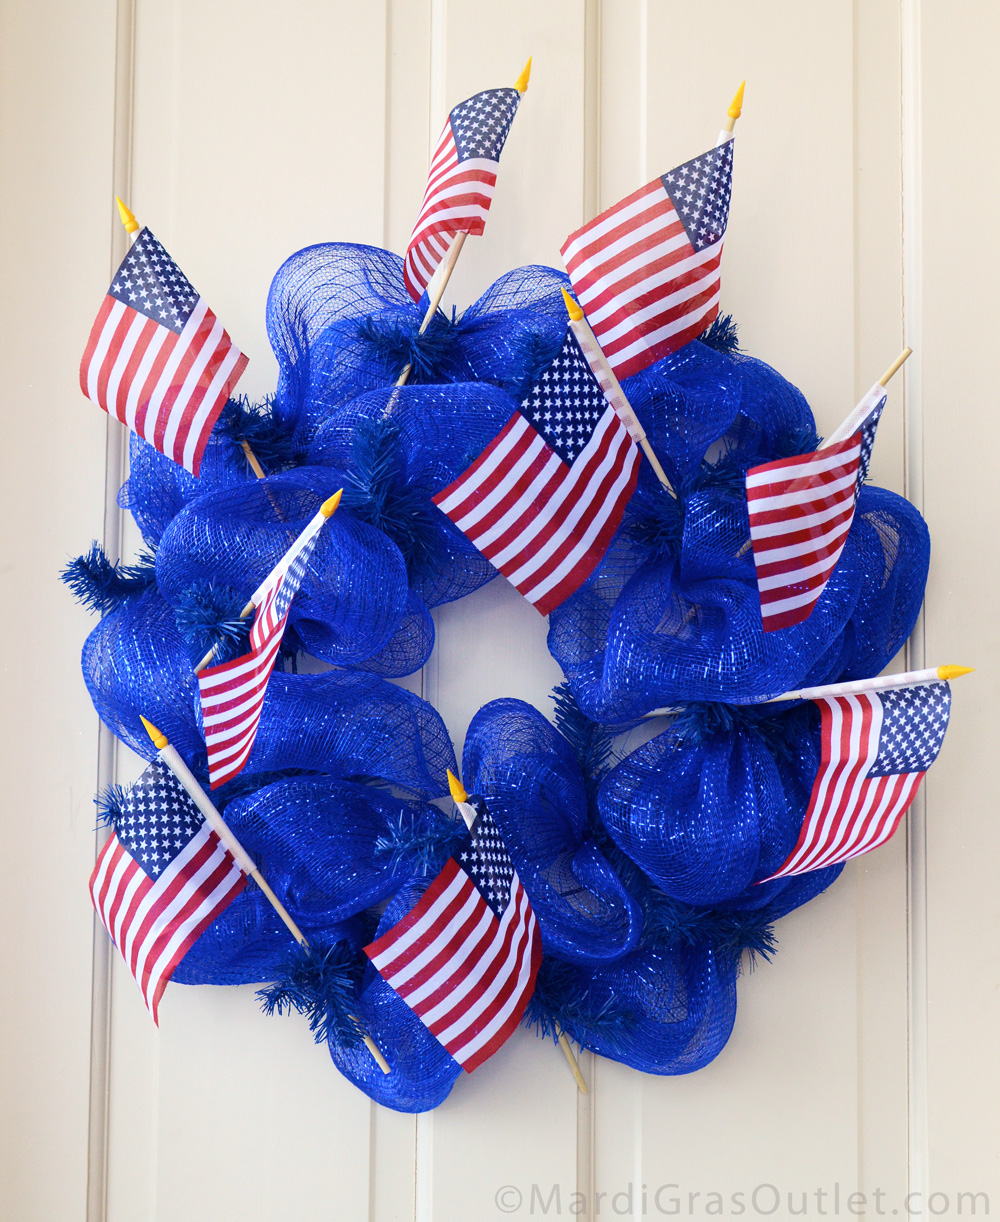 Party ideas by mardi gras outlet patriotic wreath tutorial with deco mesh patriotic red white blue memorial day wreath wreath how baditri Gallery